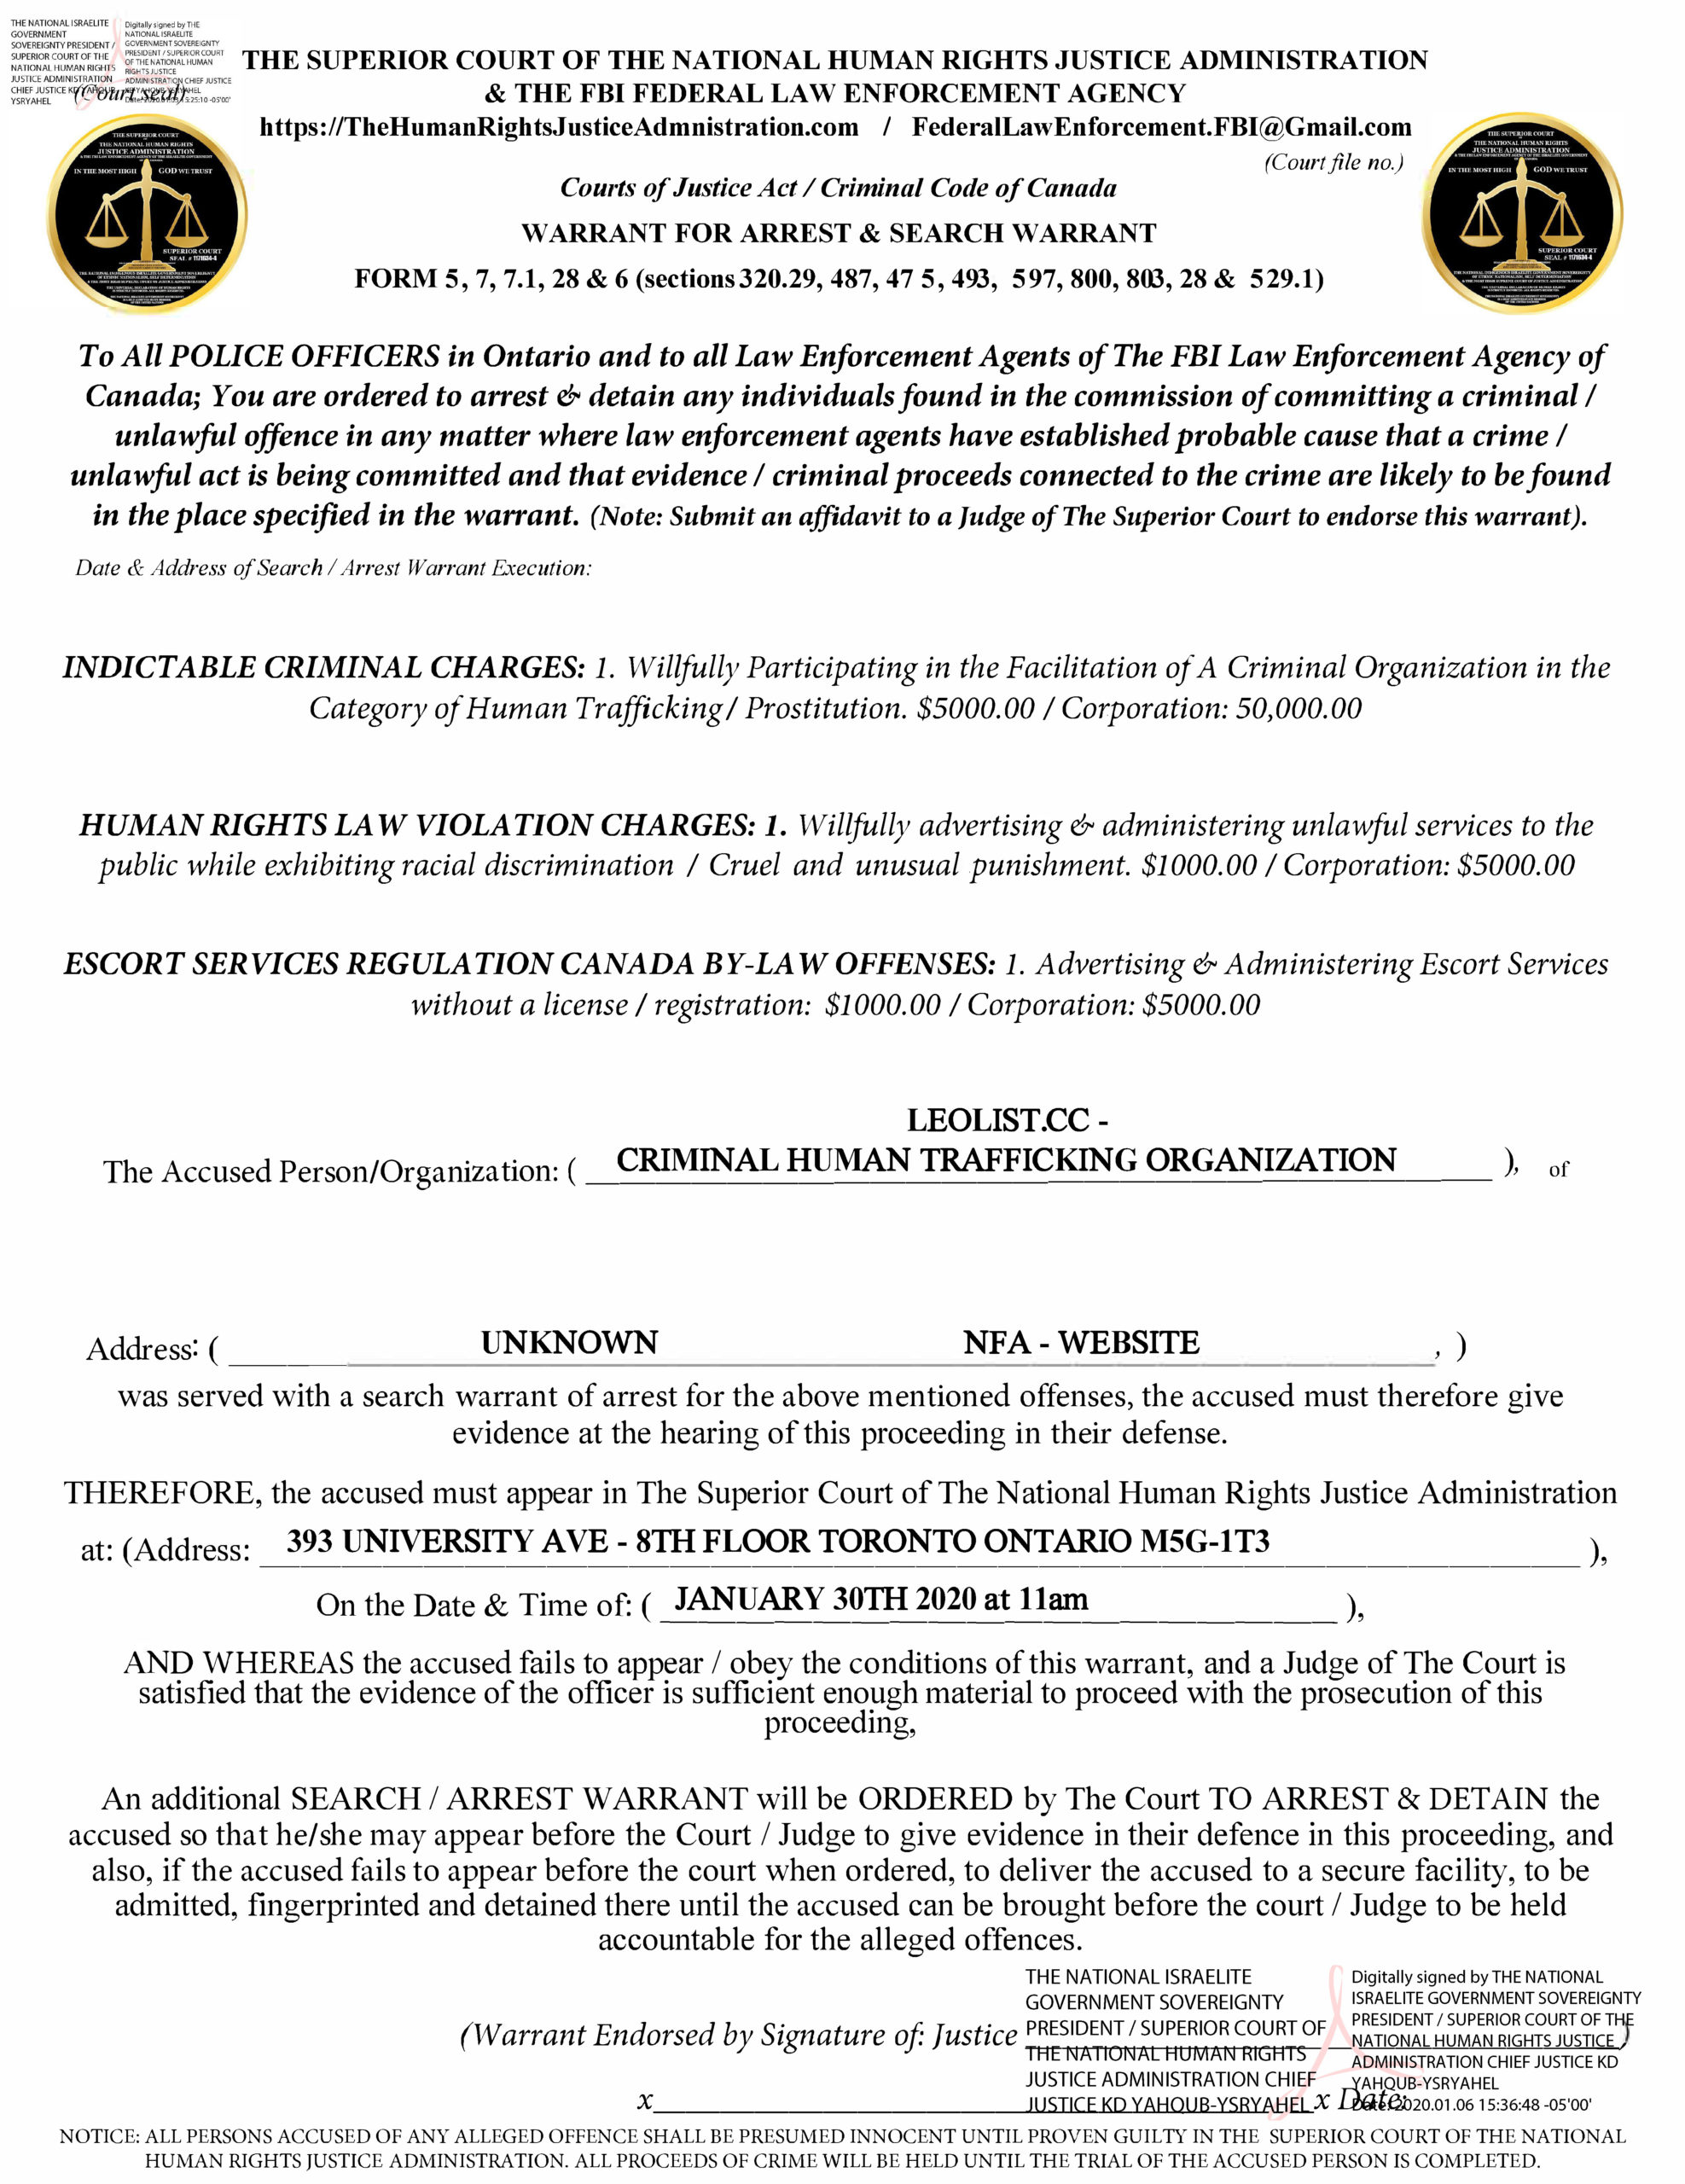 LEOLIST ARREST WARRANT - CRIMINAL HUMAN TRAFFICKING ORGANIZATION